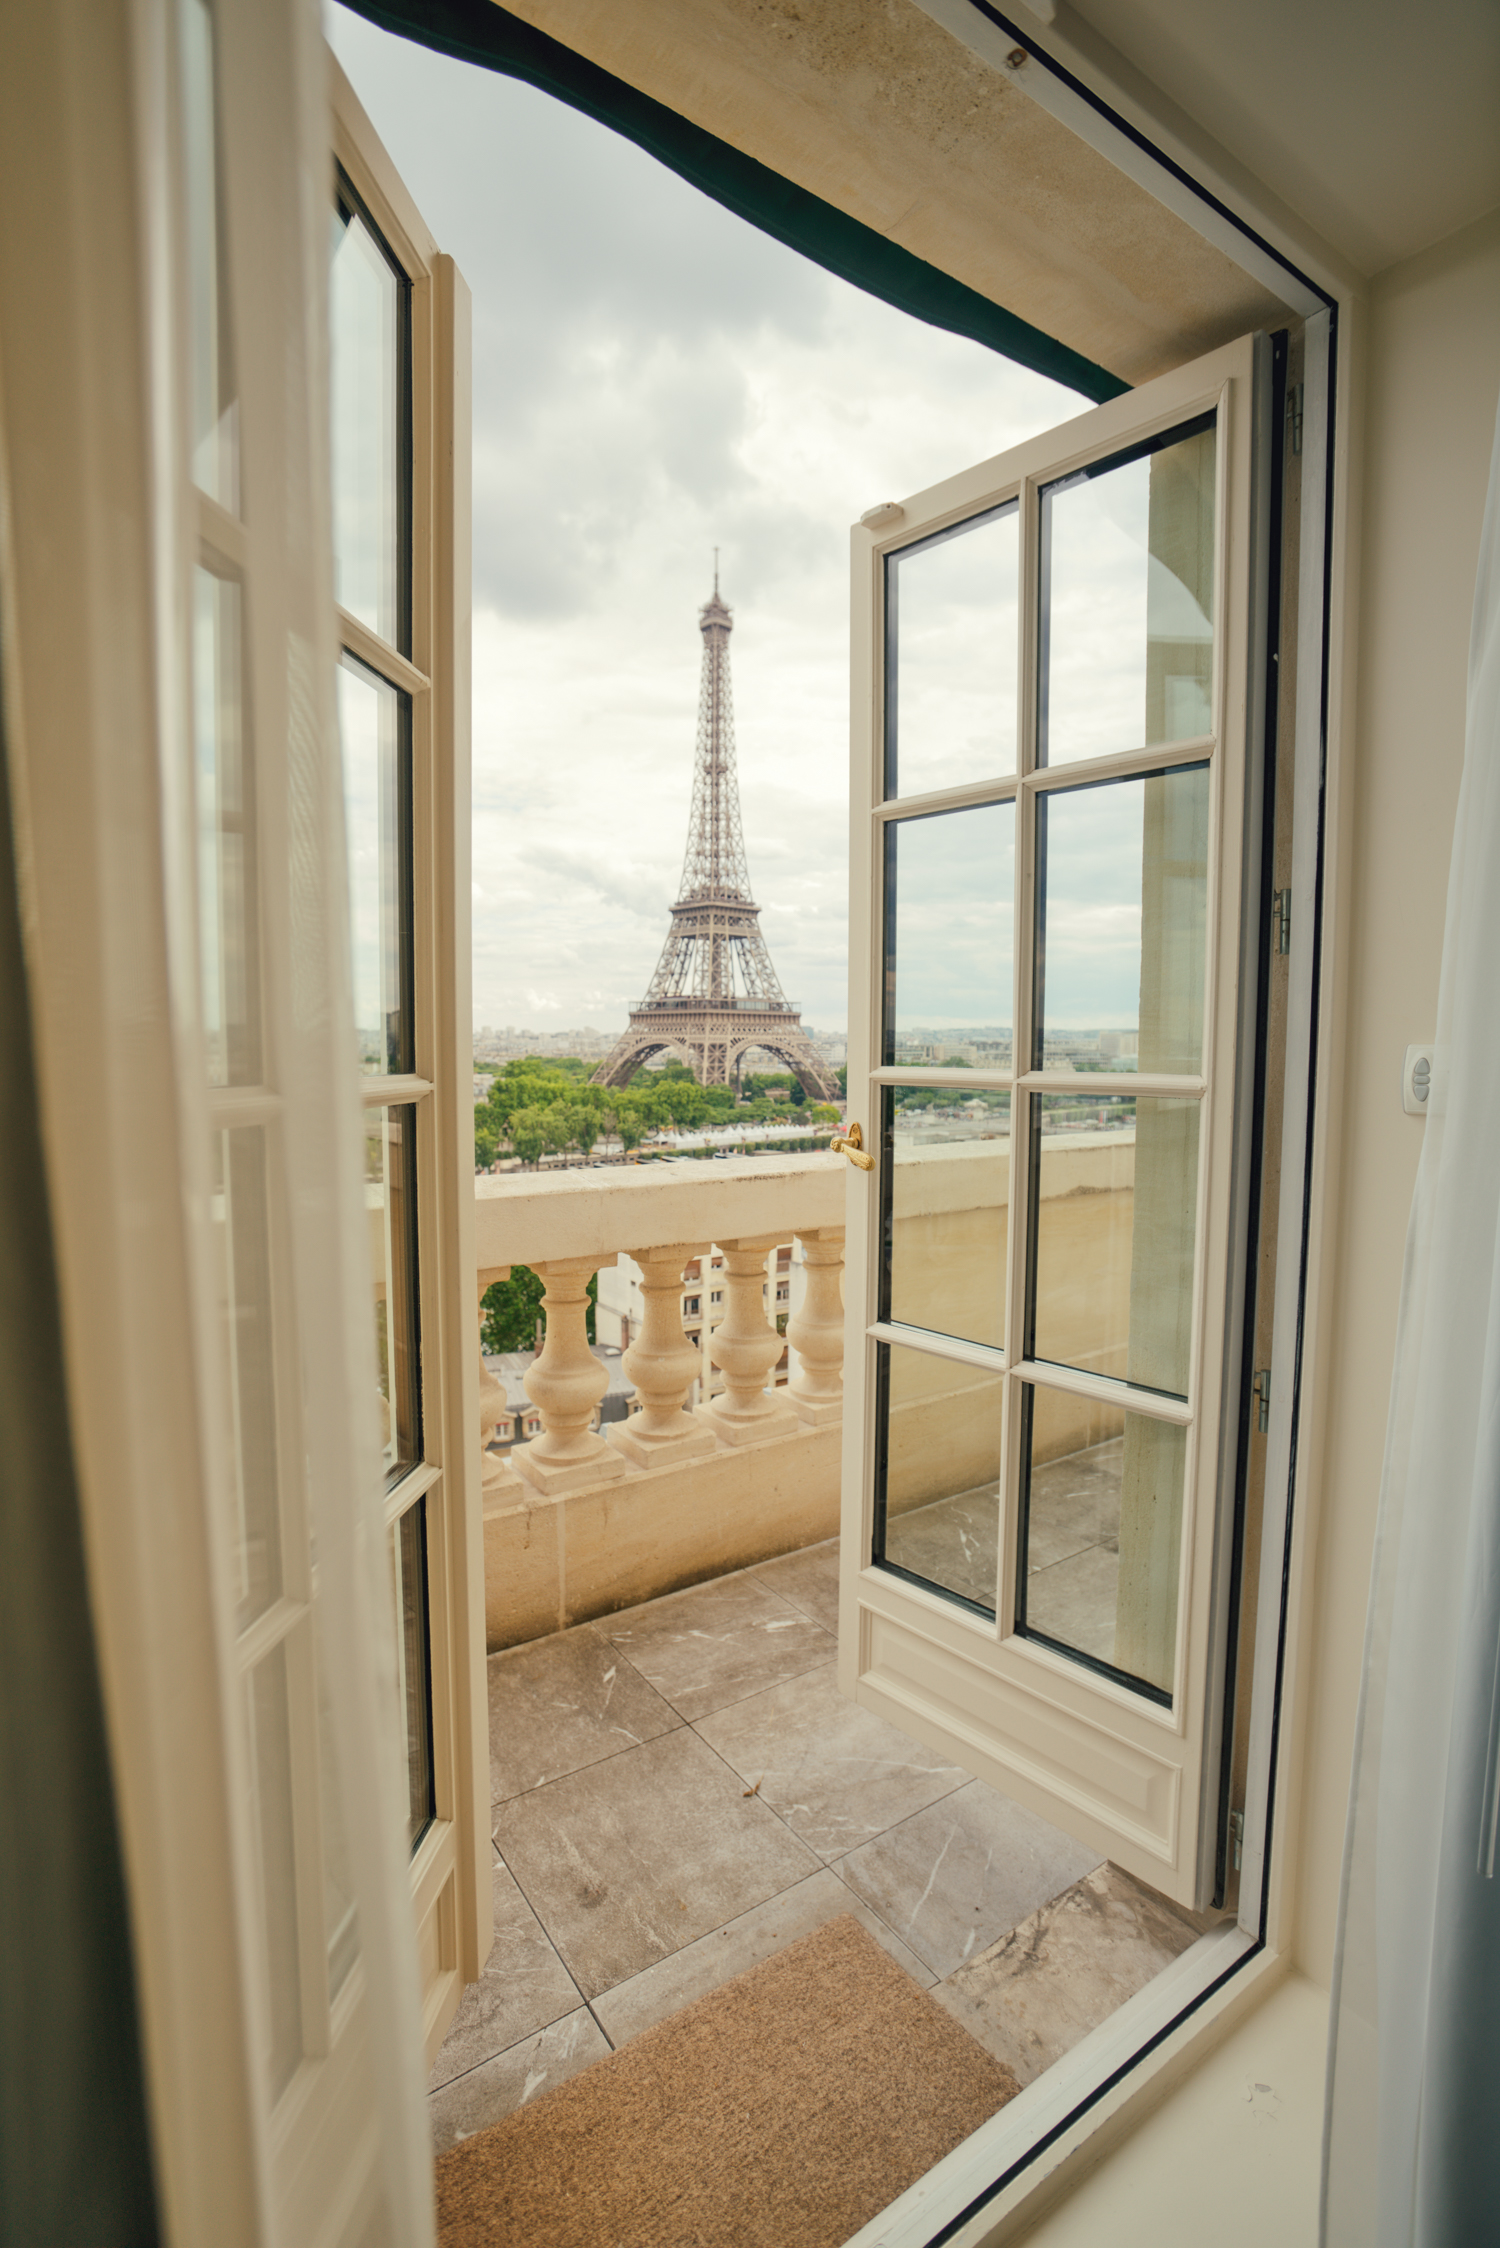 Shangri la hotel paris room view of eiffel tower for Terrace eiffel tower view room shangri la